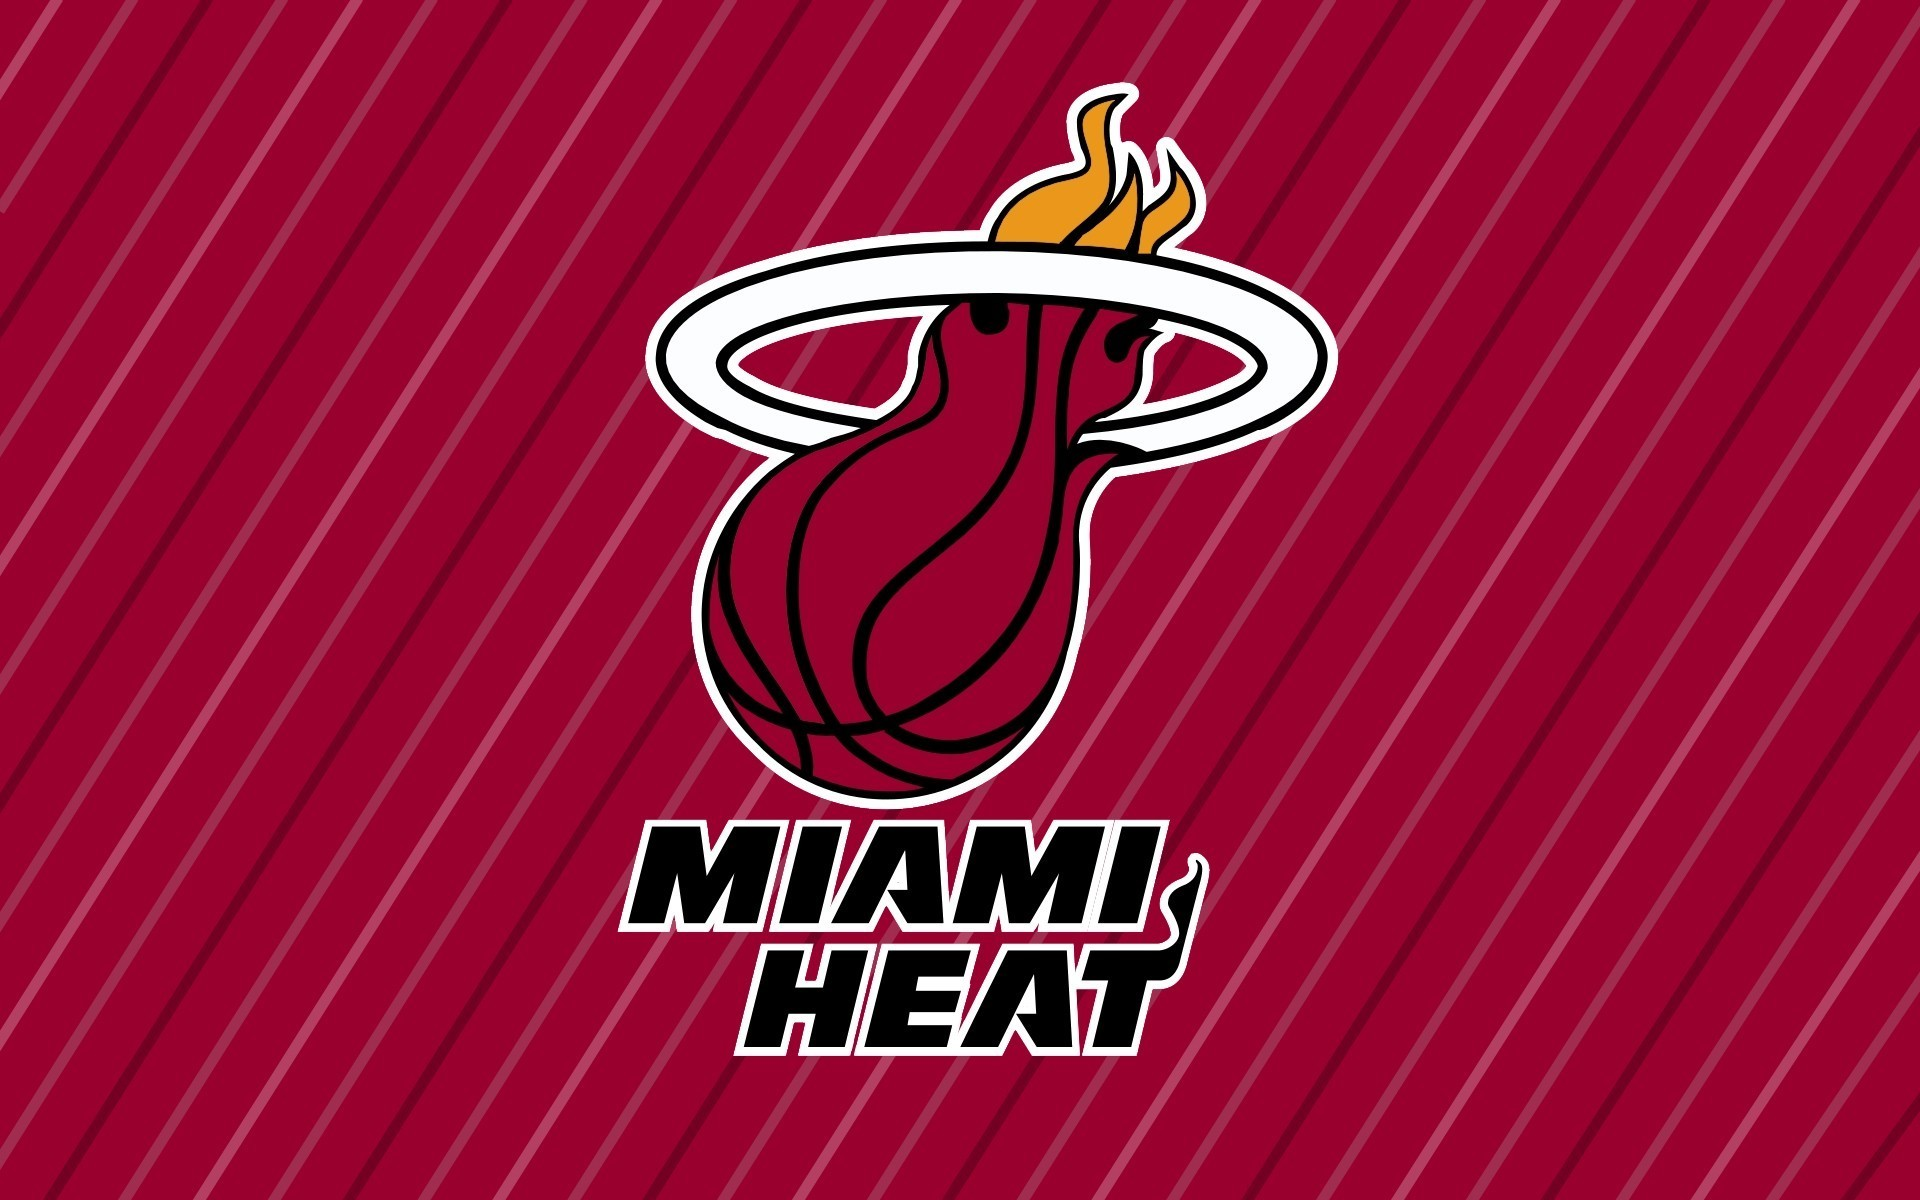 Miami heat wallpapers 2018 71 images - Miami heat wallpaper android download ...